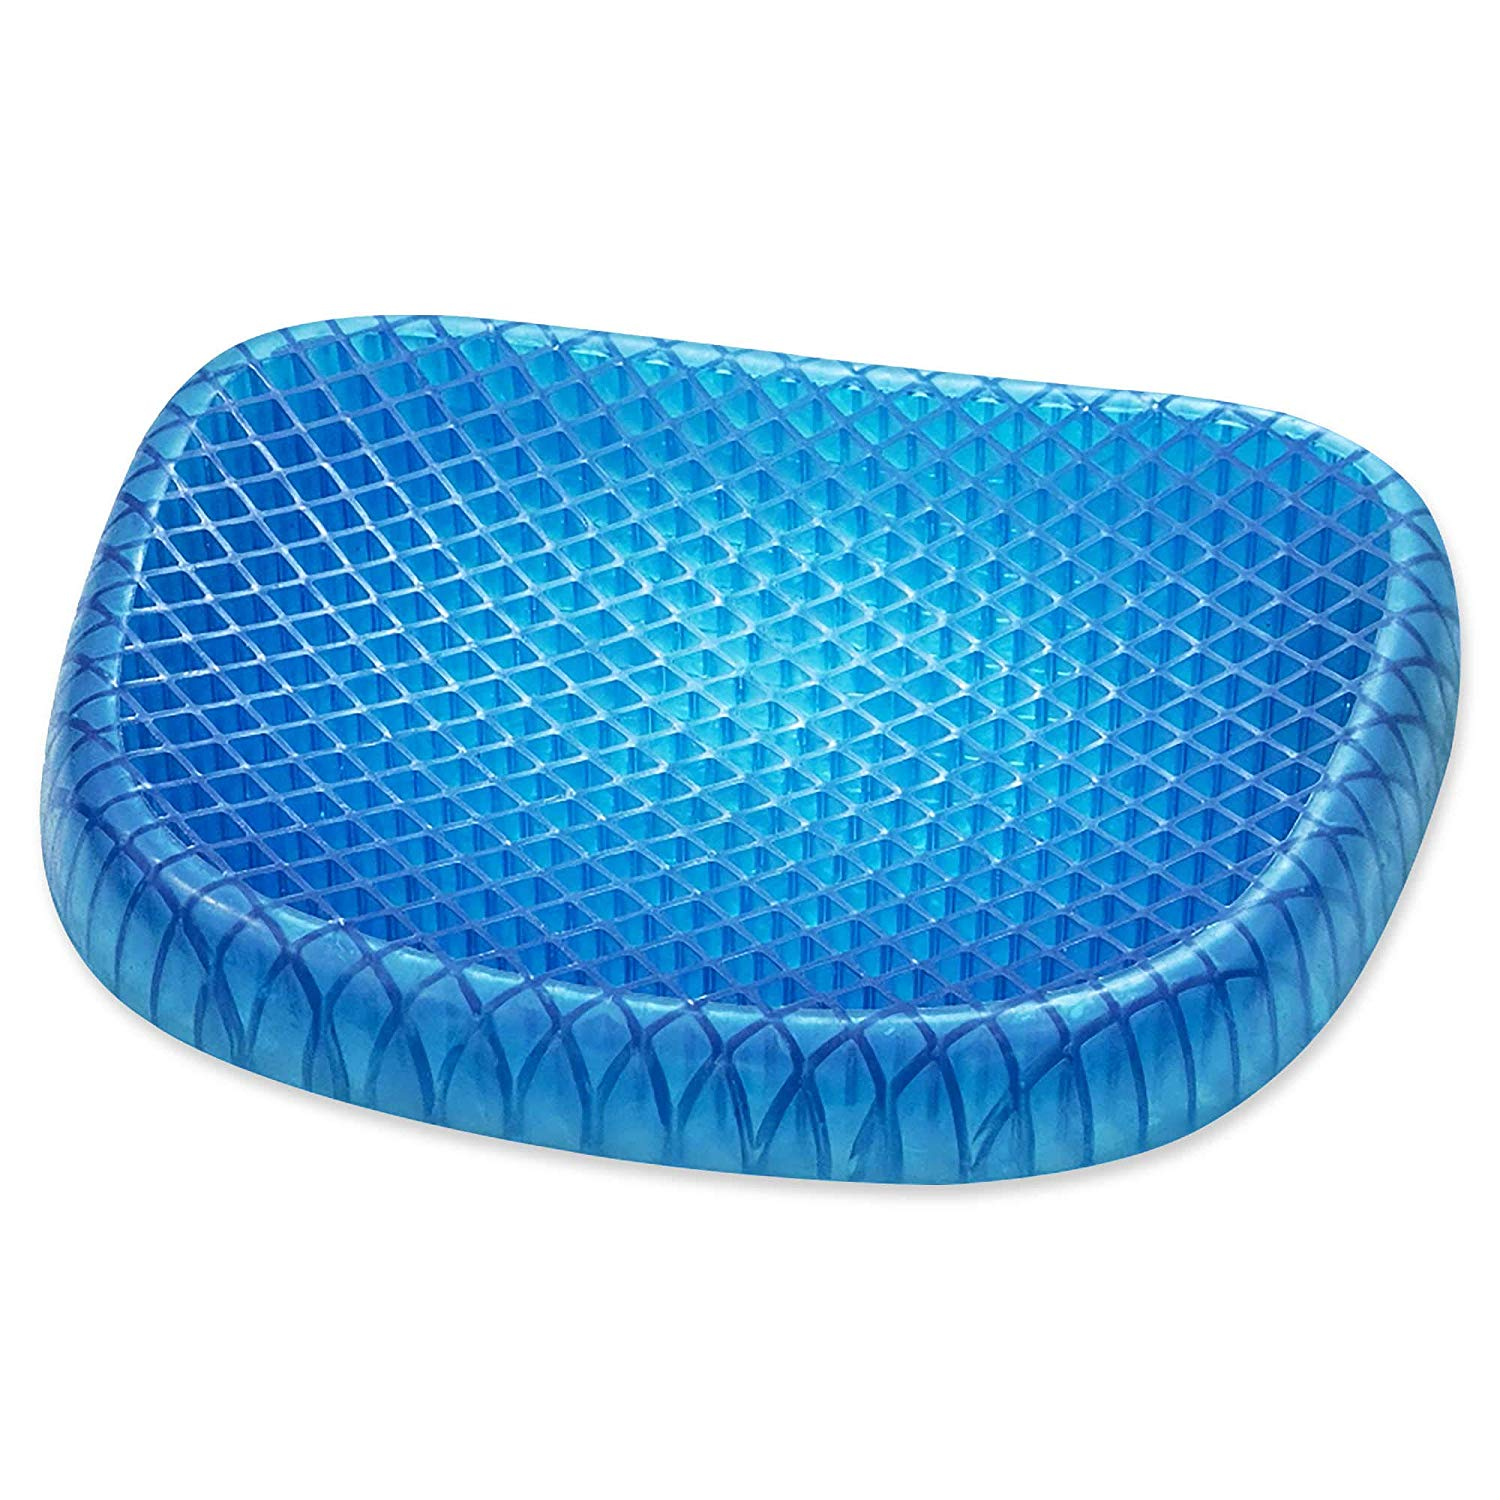 GO KITCHEN Gel Seat Cushion for Chair Pad with Non Slip Washable Cover Soft Pad for Pain Relief for Car, Office Chair,for Wheelchair Gel Pad